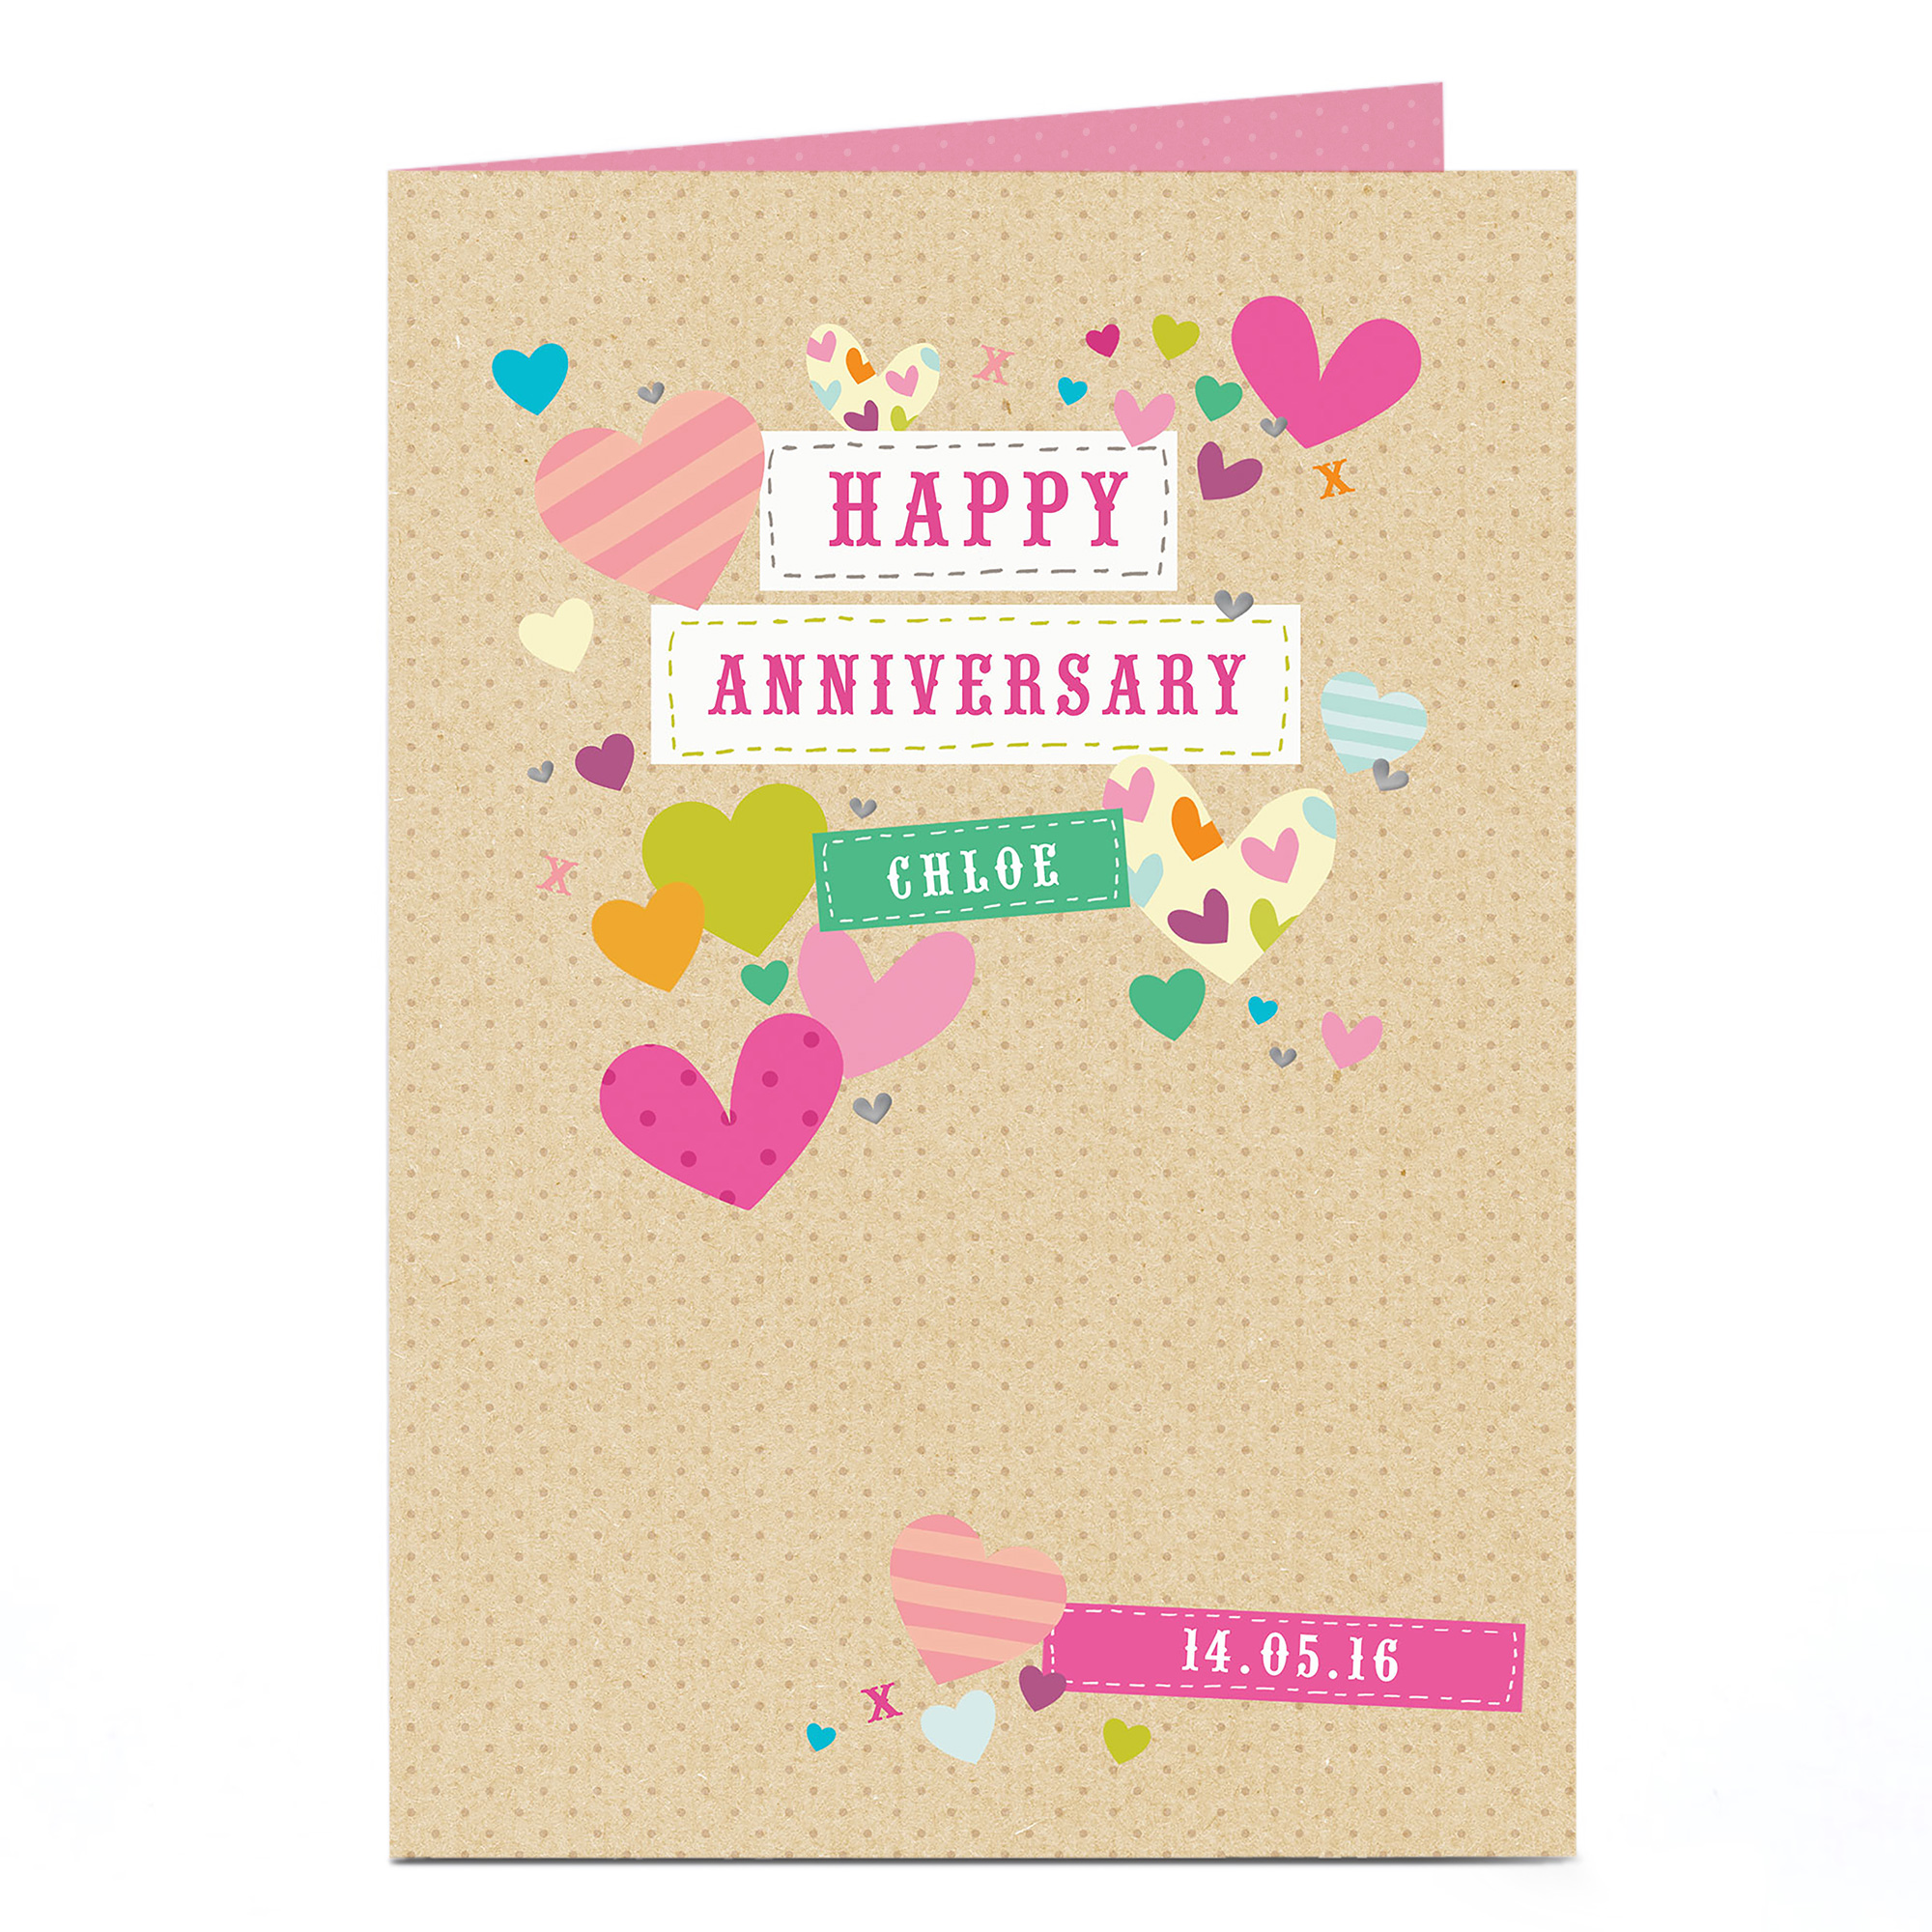 Personalised Anniversary Card - Pretty Hearts & Date